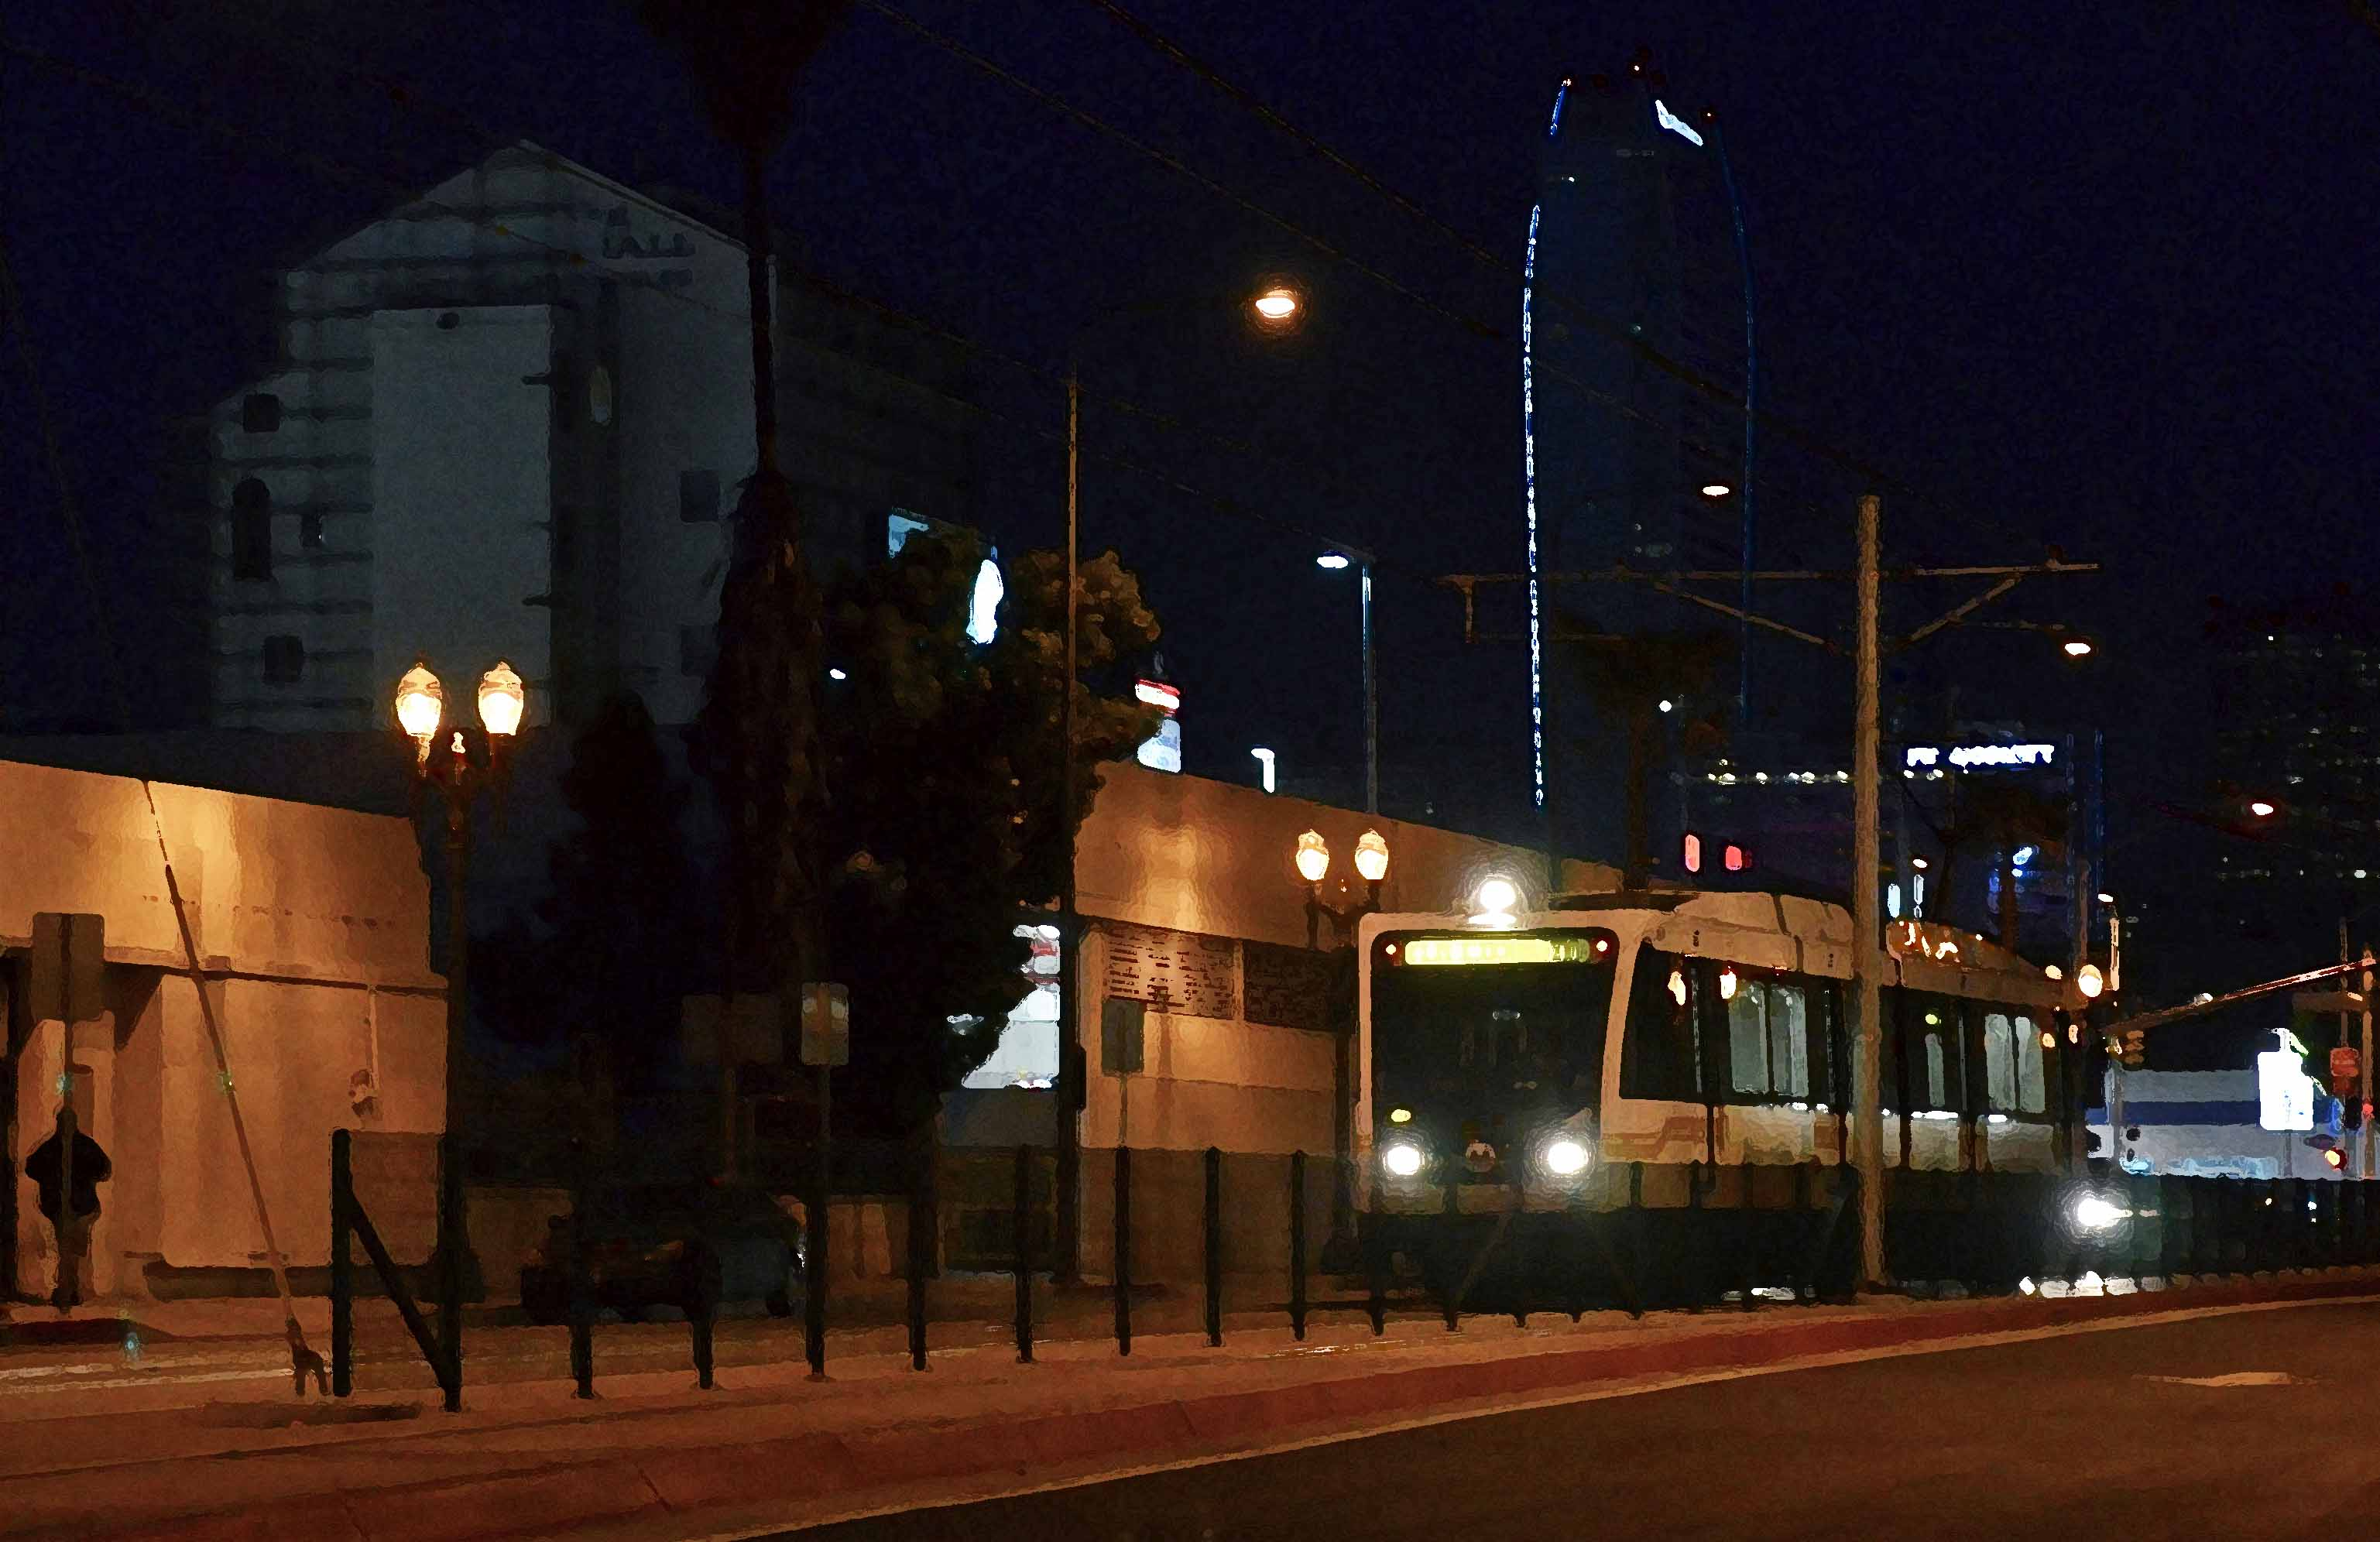 Expo line opening date in Australia